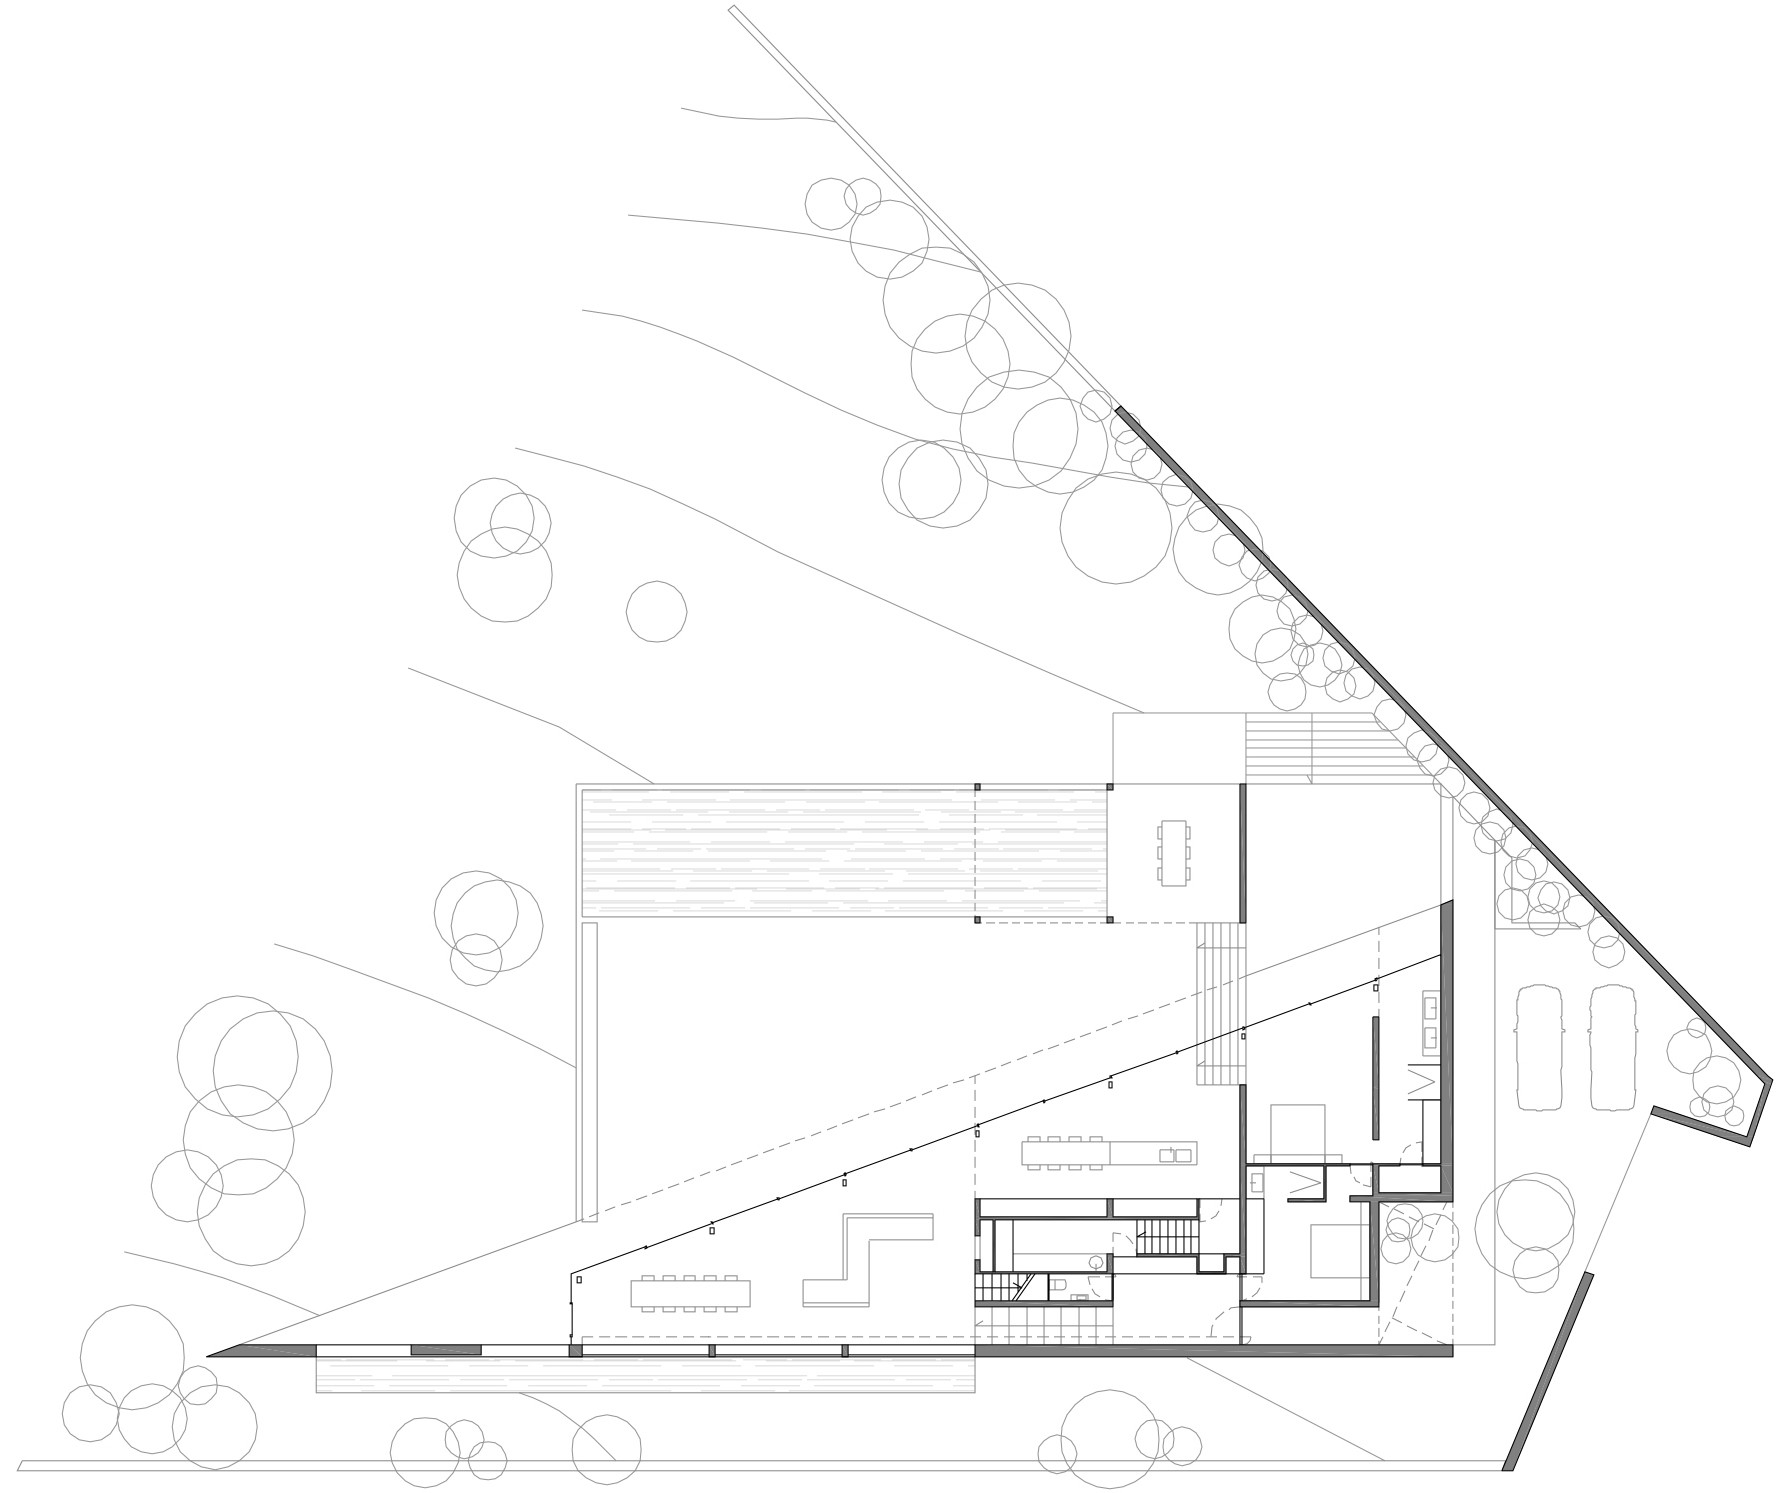 Gallery of infinity atelier d architecture bruno erpicum for Plan d architecture